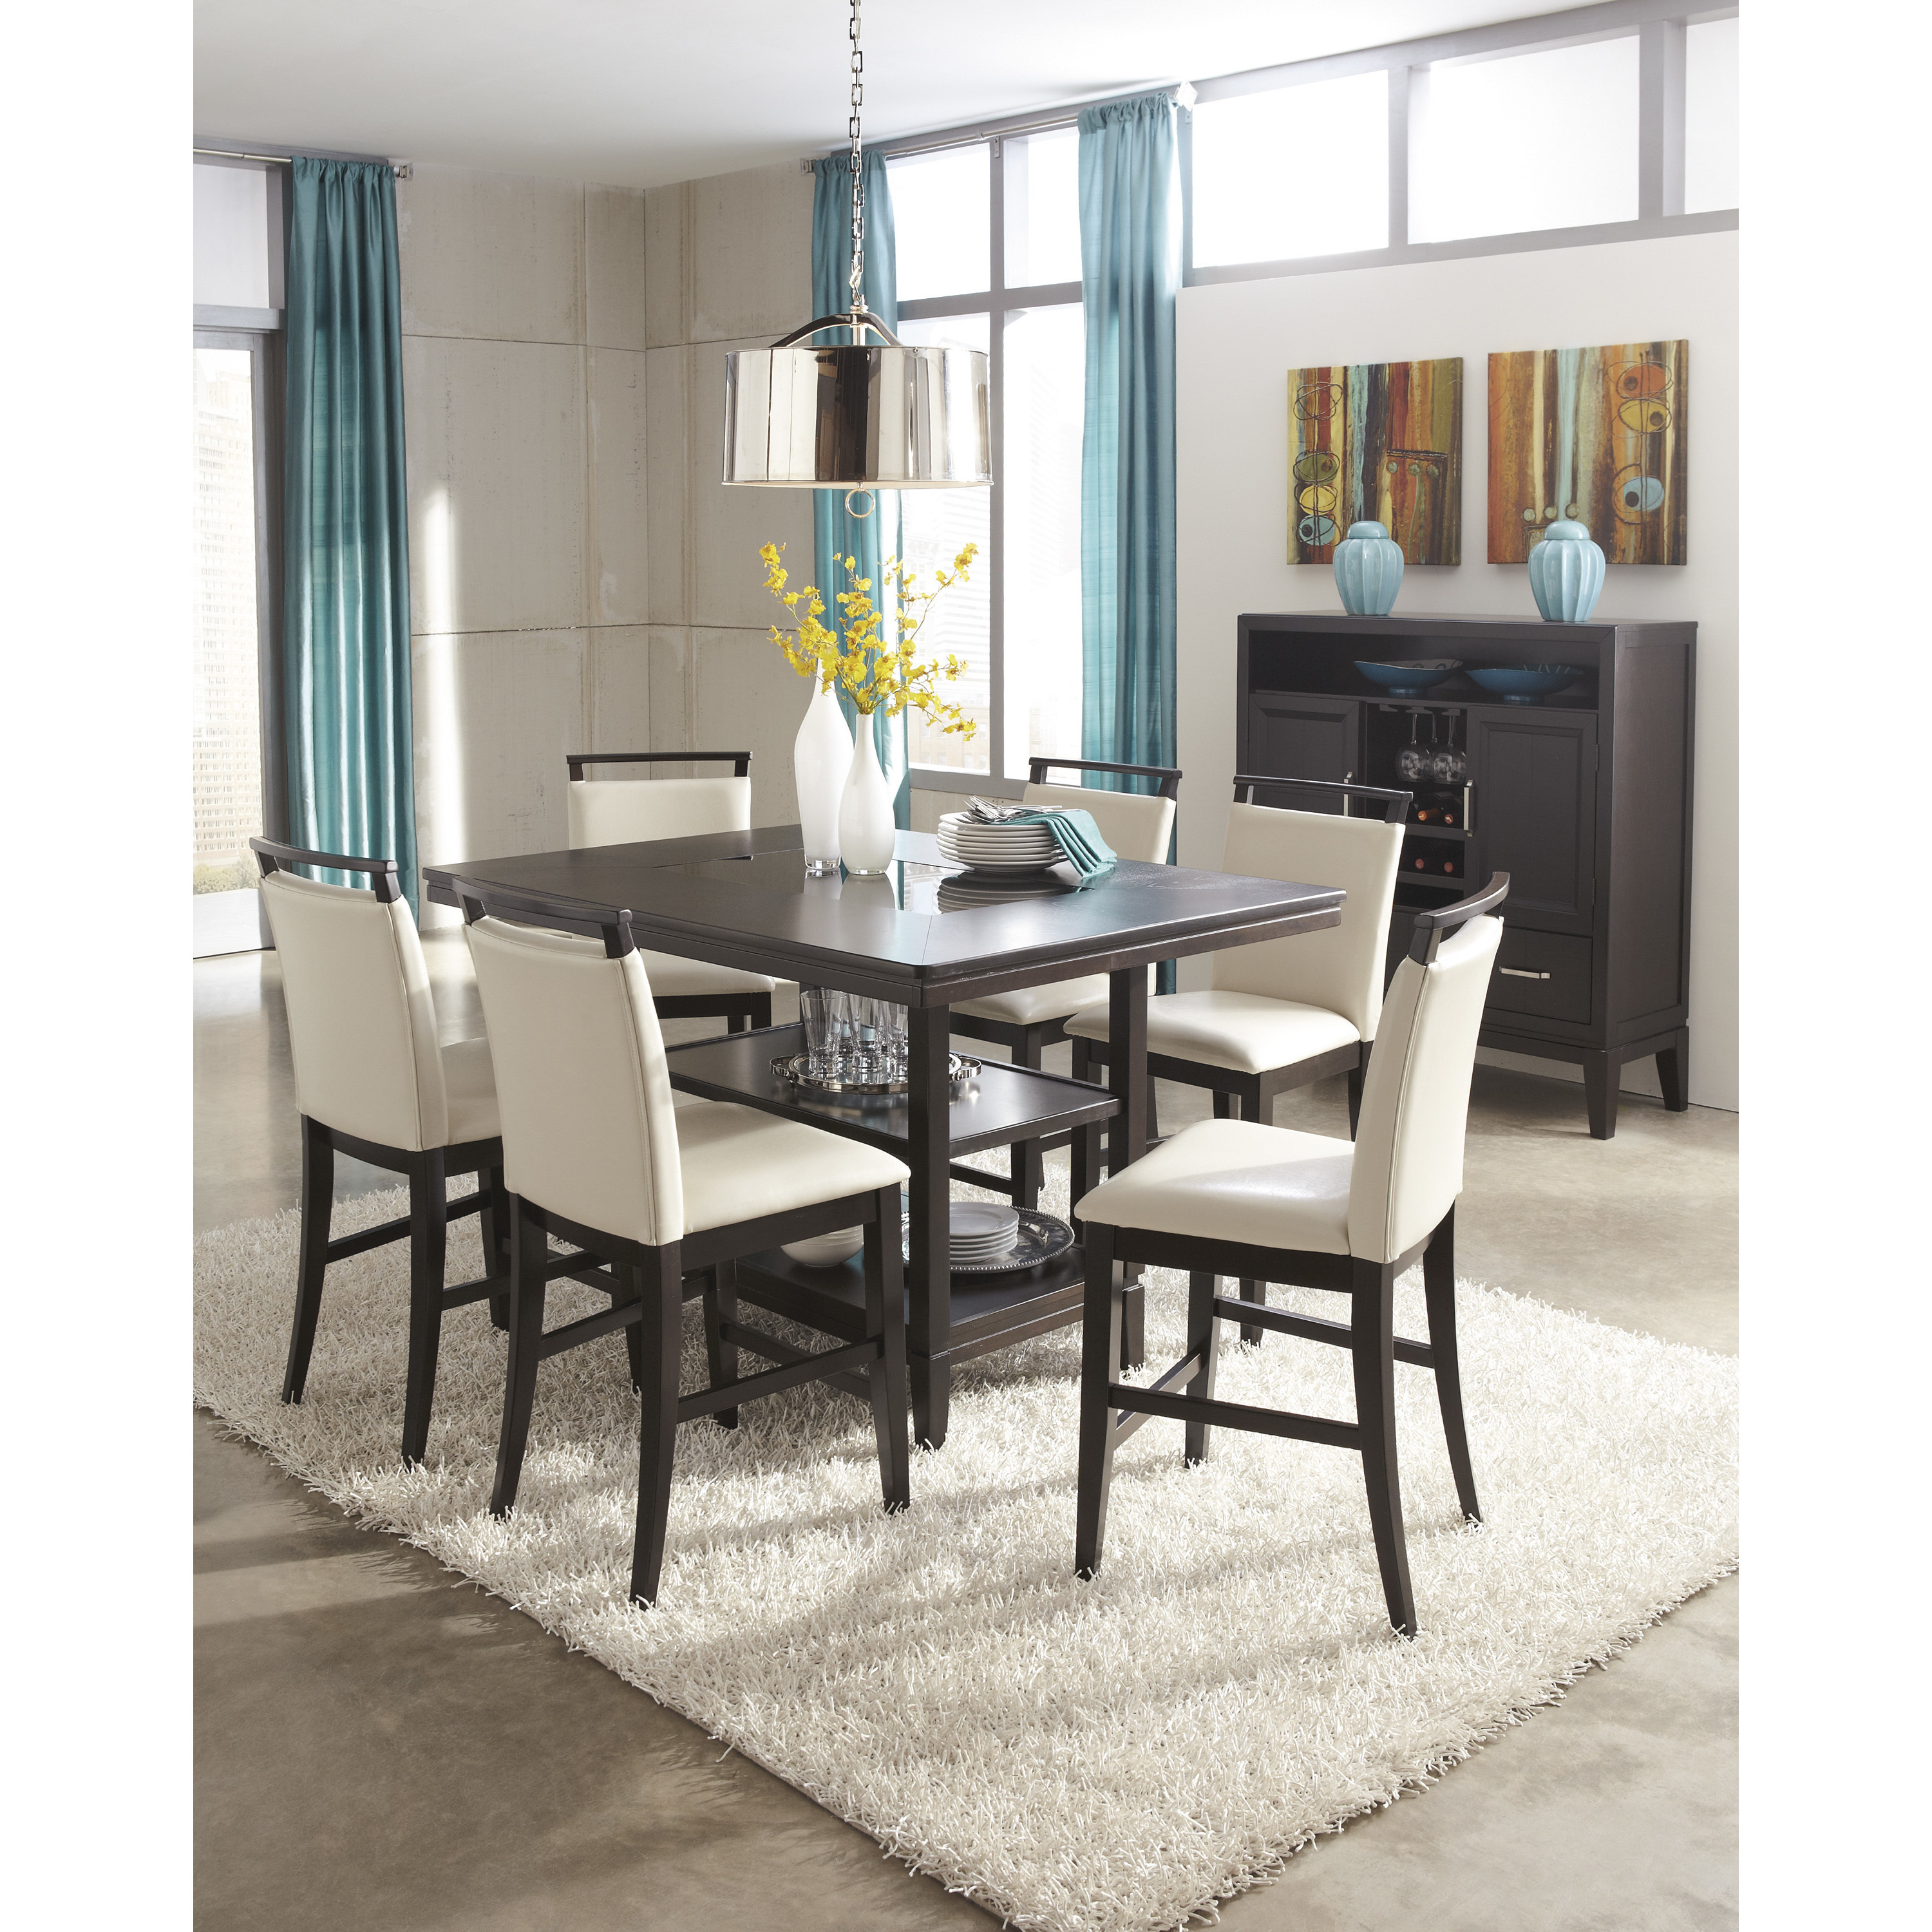 Best ideas about Bar Height Dining Table . Save or Pin Signature Design by Ashley Trishelle Counter Height Dining Now.